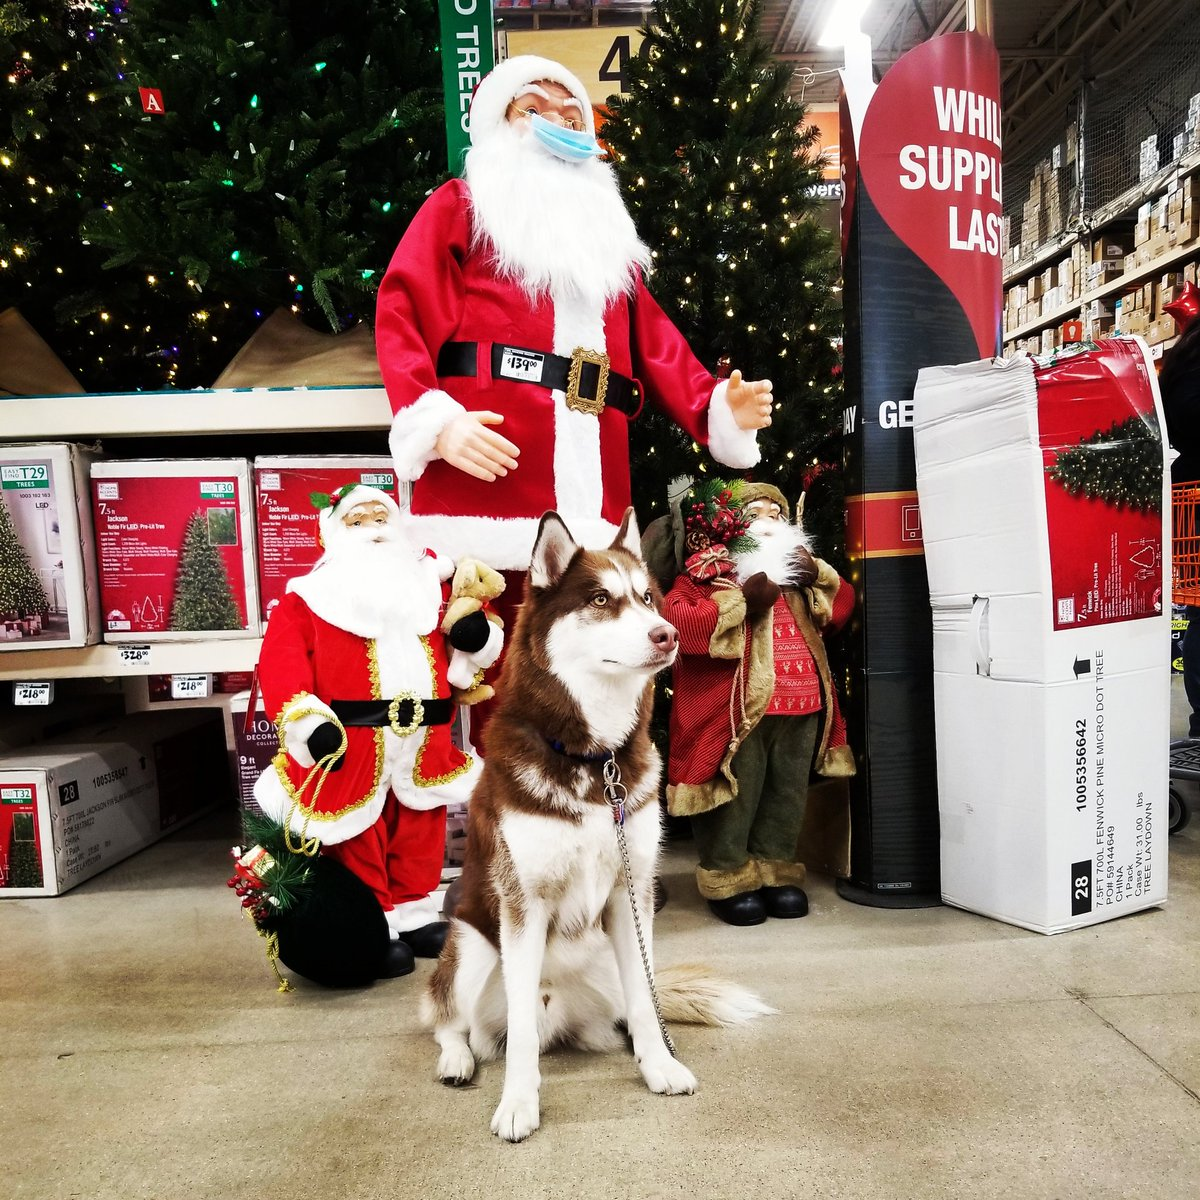 This holiday season...squad...roll out.  #dog #dogs #dogstagram #dogsofinstagram #of #pet #pets #petstagram #petsofinstagram #siberianhusky #siberianhusky_feature #siberianhuskiesofinstagram #siberianhuskylife #husky #huskypics #huskies #huskiesofinstagram #huskynation https://t.co/MvojINWnLX